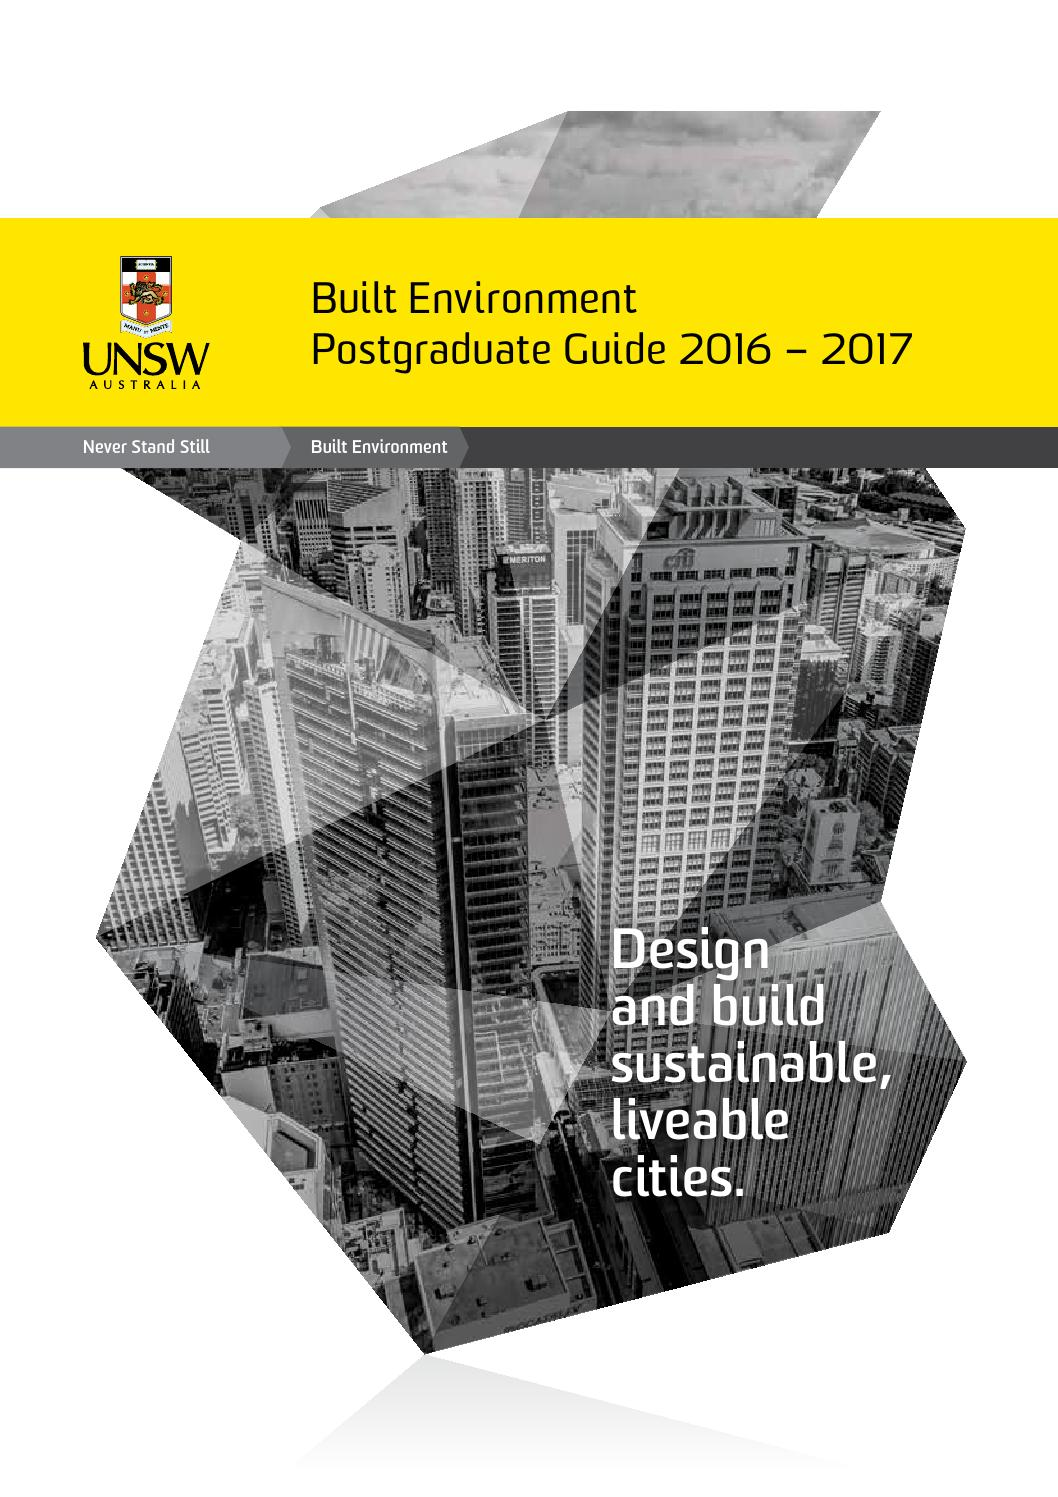 Unsw Cover Letter Unsw Built Environment Postgraduate Guide 2017 By Unsw Built